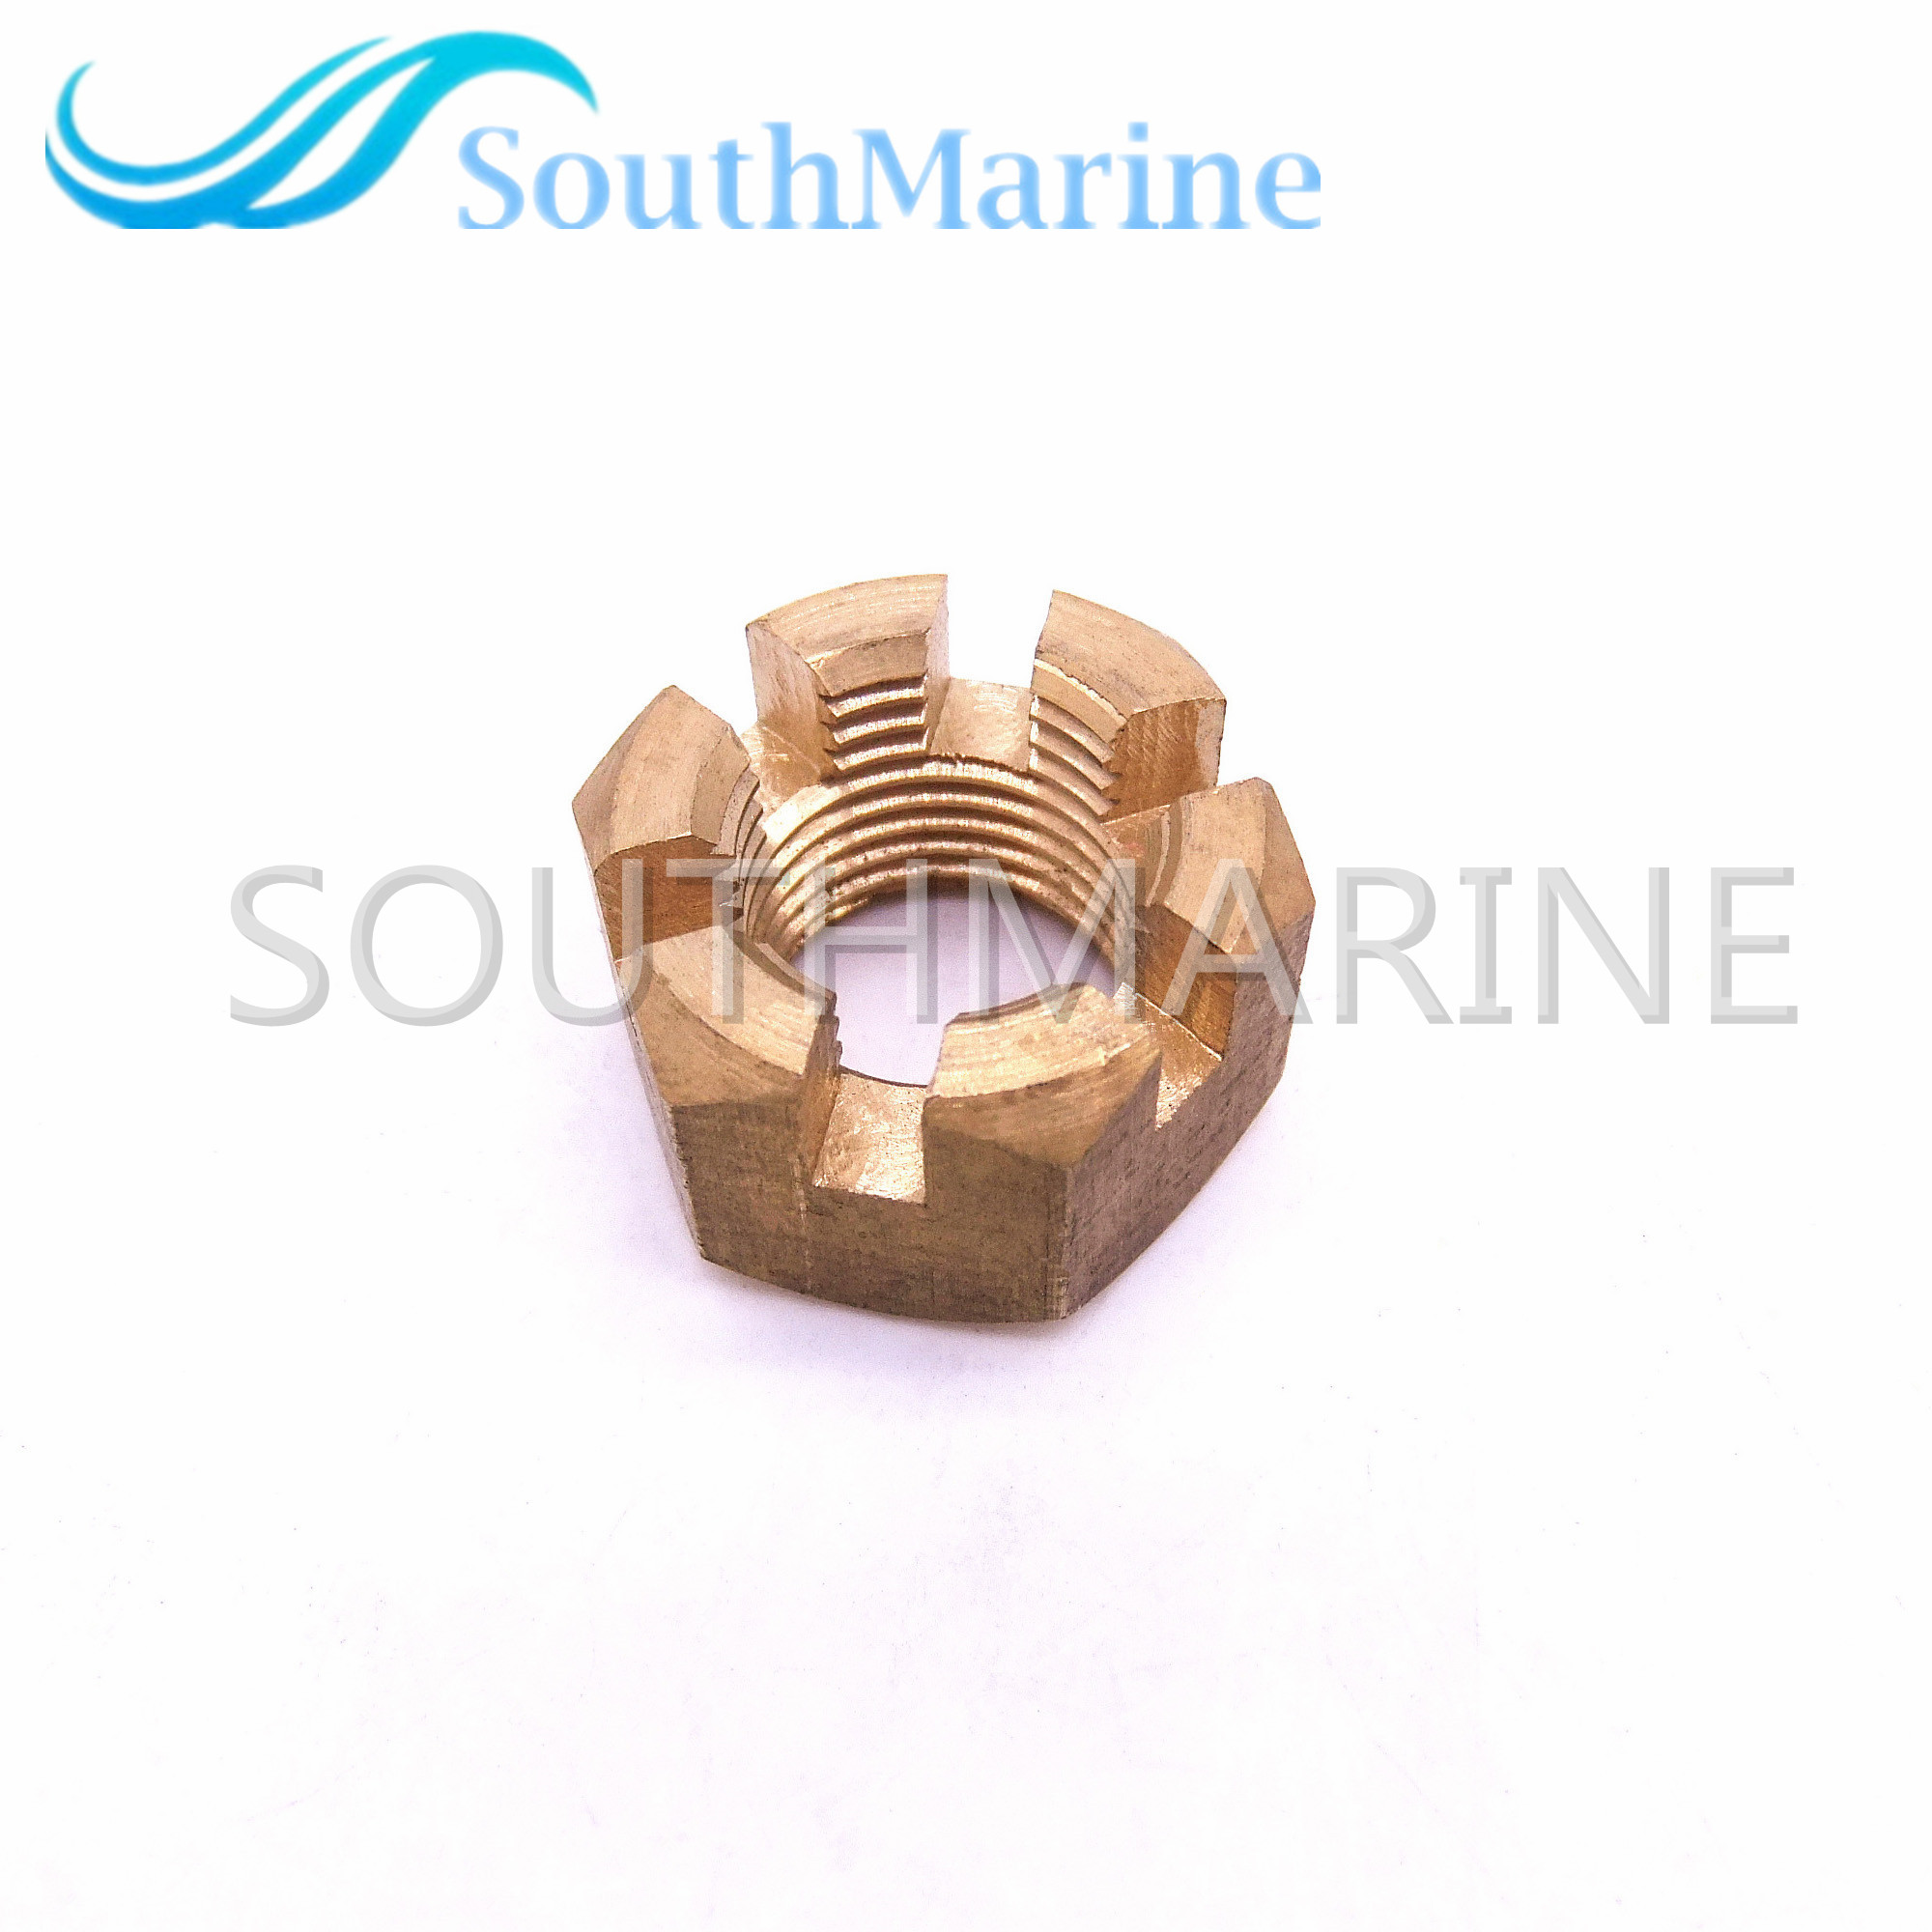 Outboard Engine Marine Parts 90171-16011 Nut, Propeller Castle For Yamaha 40HP 50HP 55HP 60HP 70HP 90HP, Free Shipping